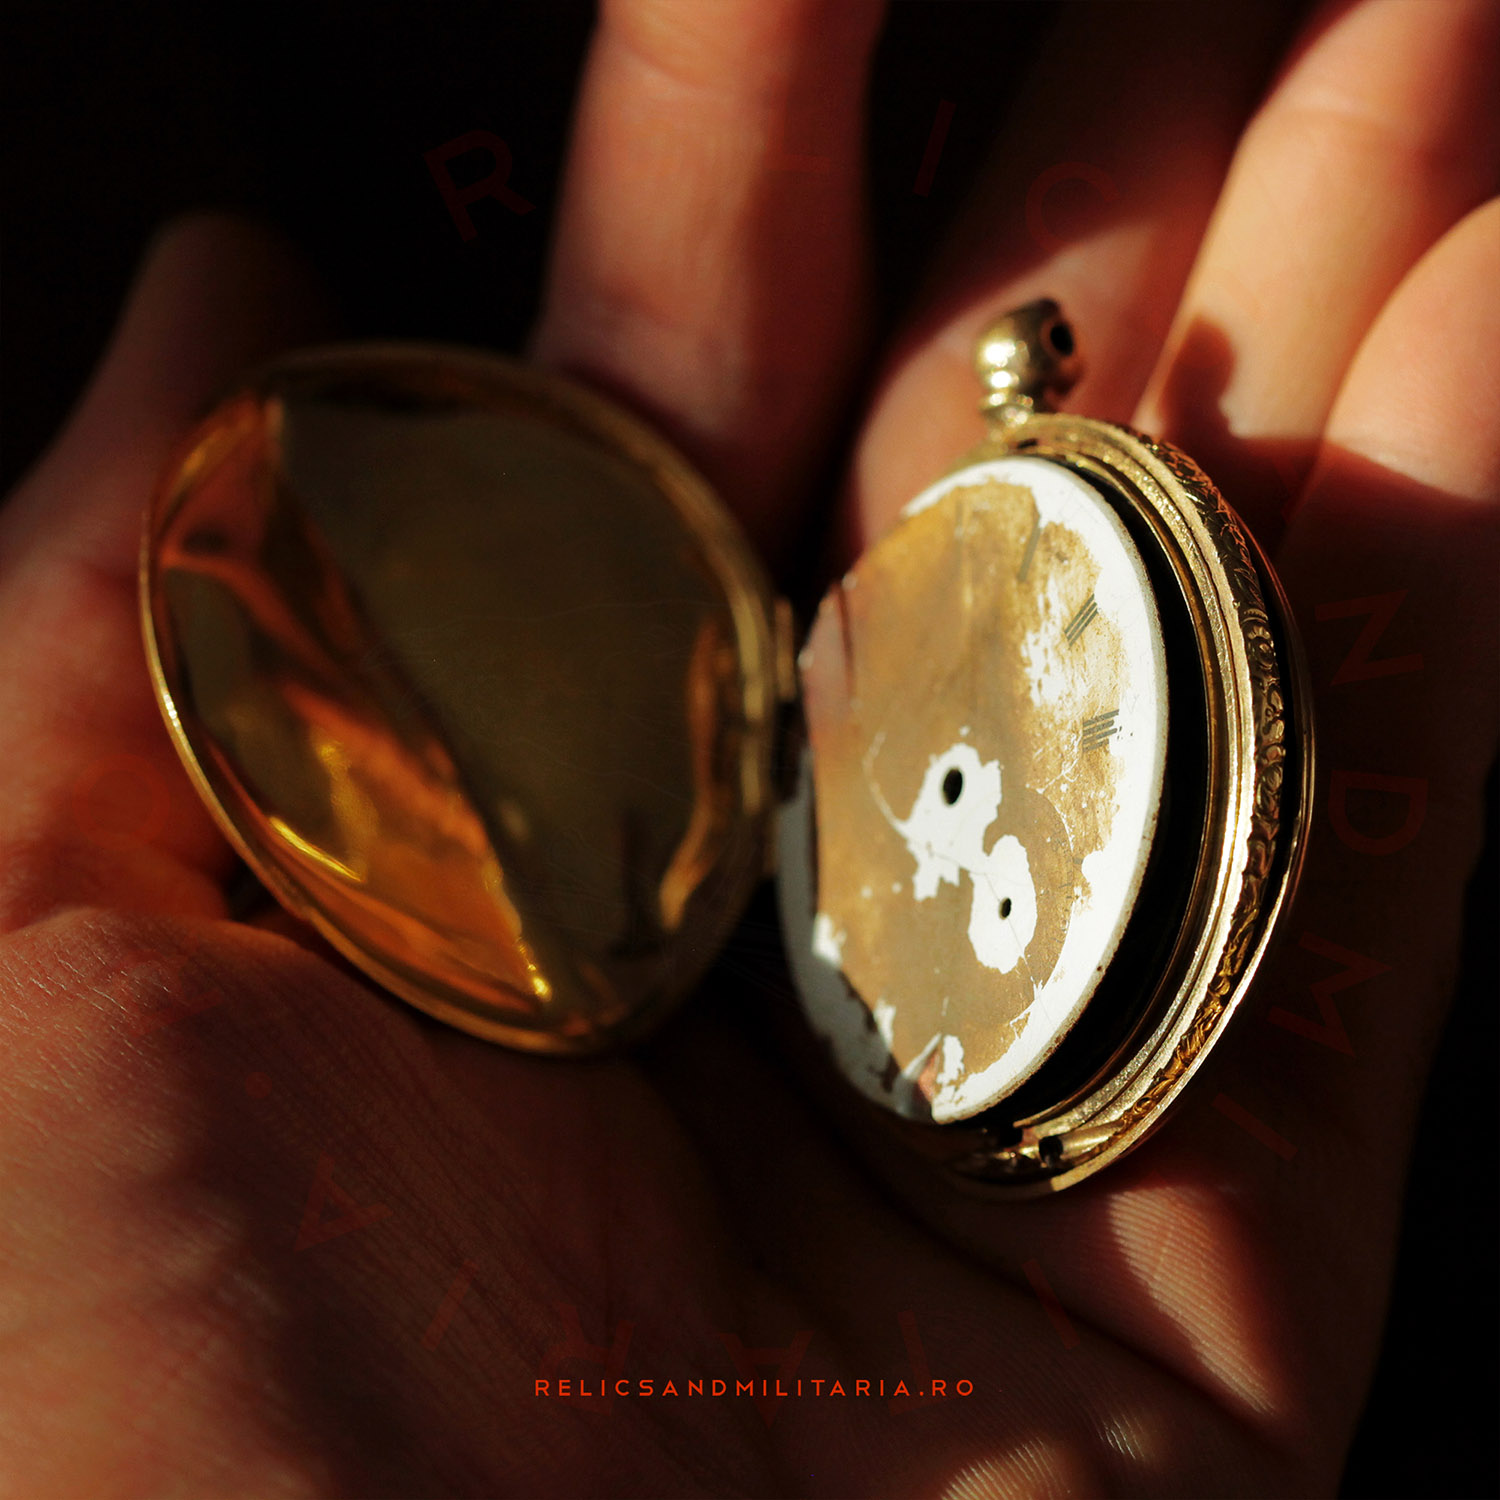 18k gold pocket watch made in the 1800s era by Jules Calame Robert in London